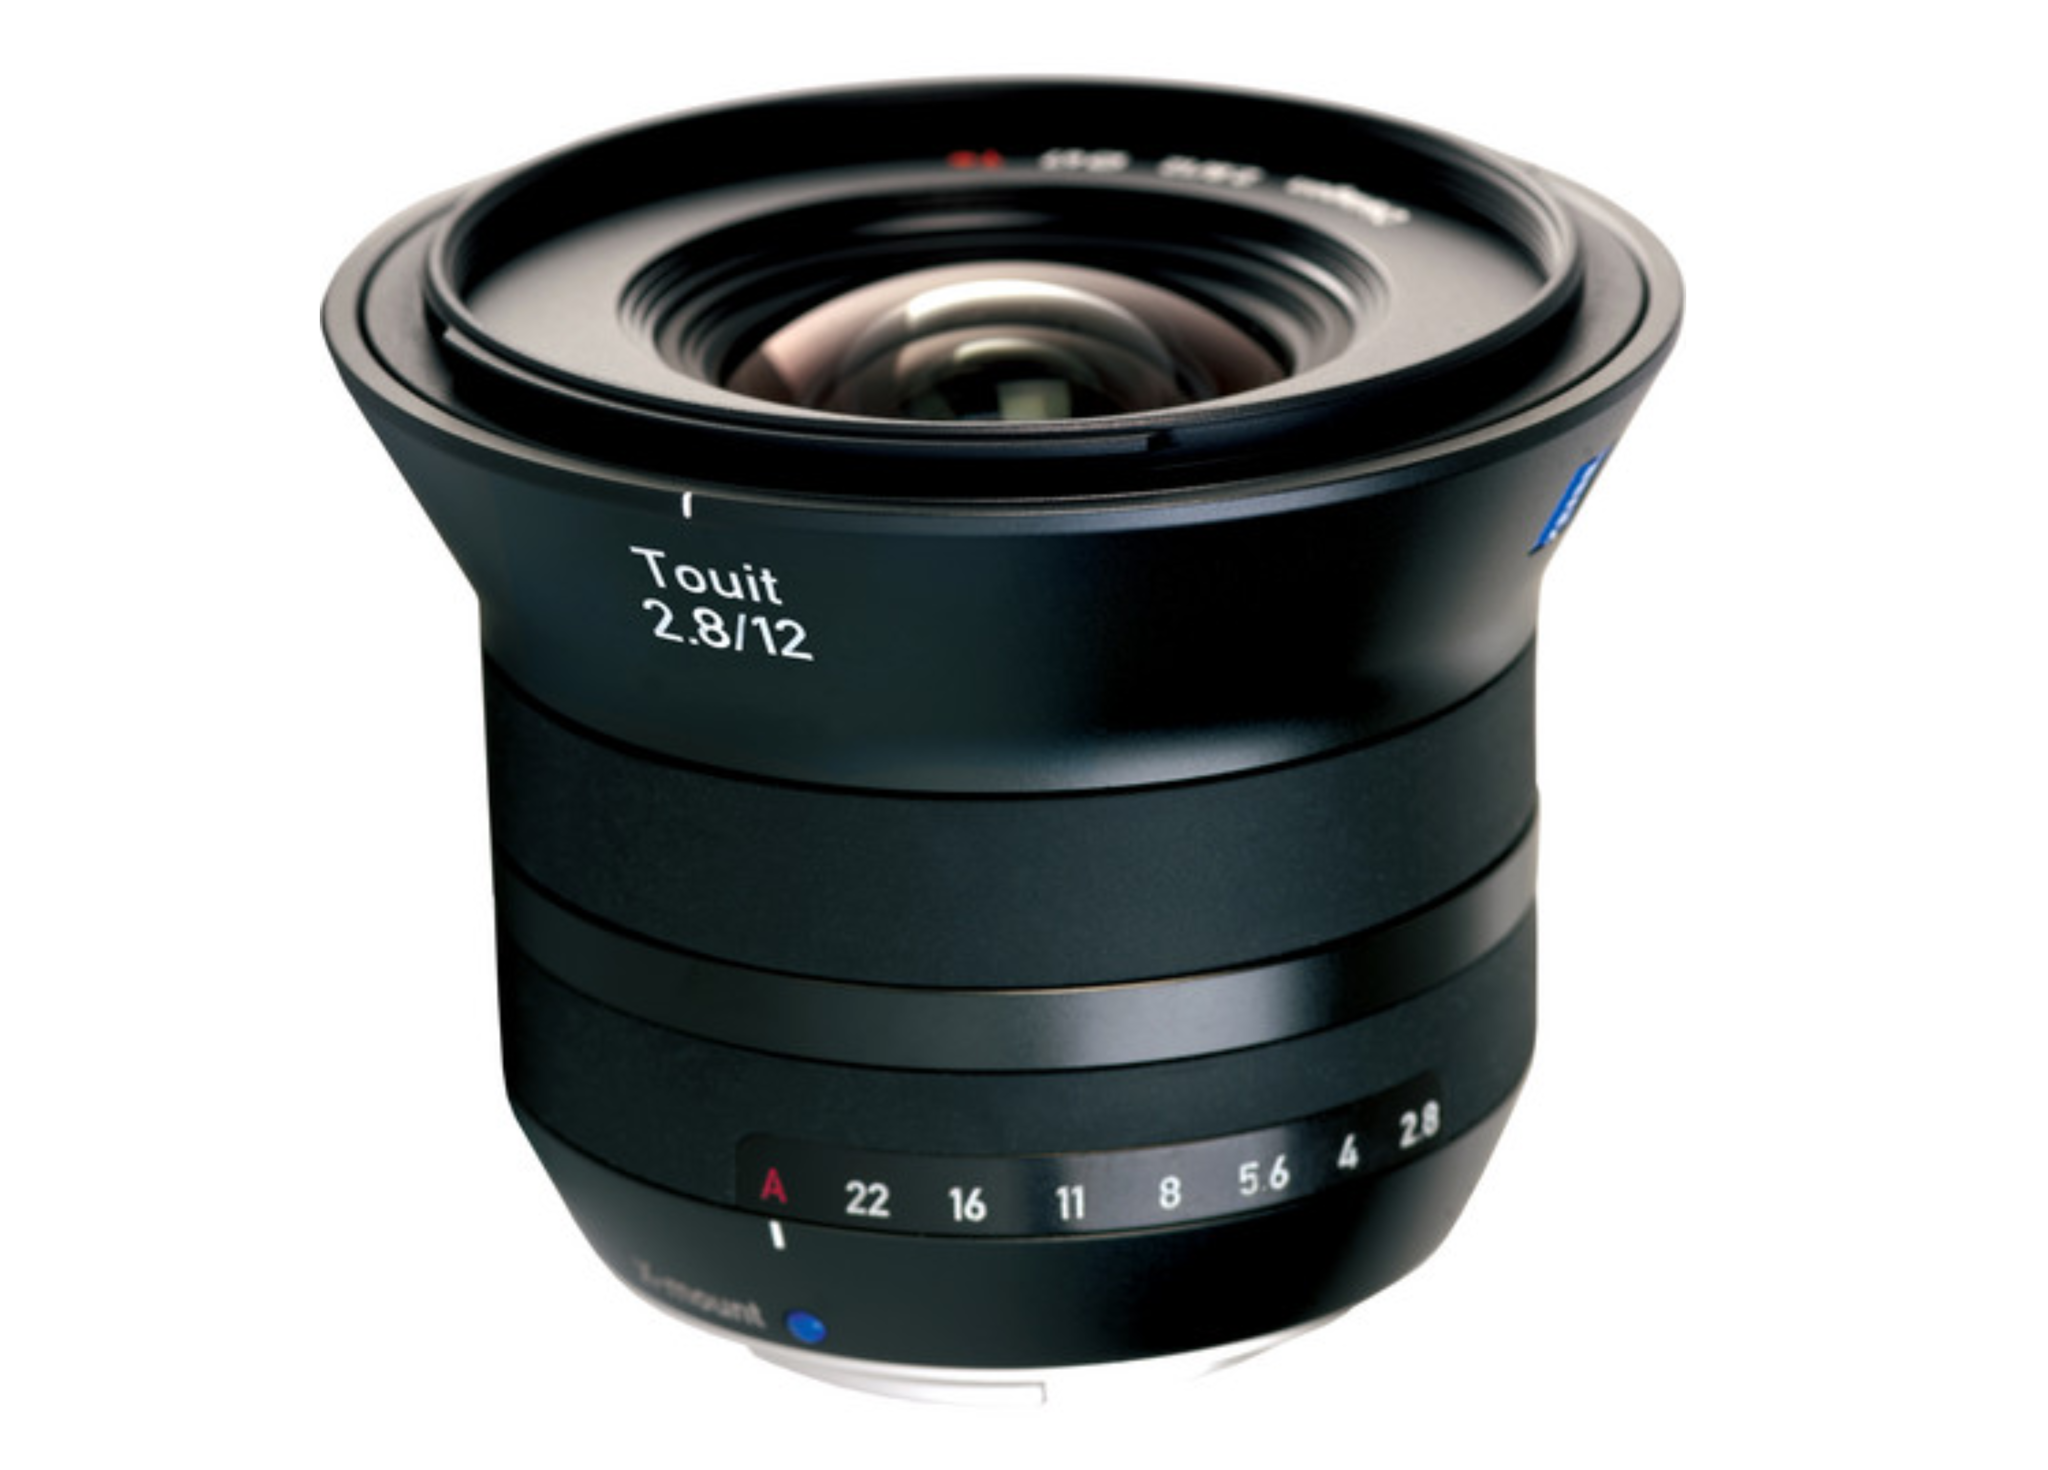 ZEISS Touit 12mm f/2.8 Lens